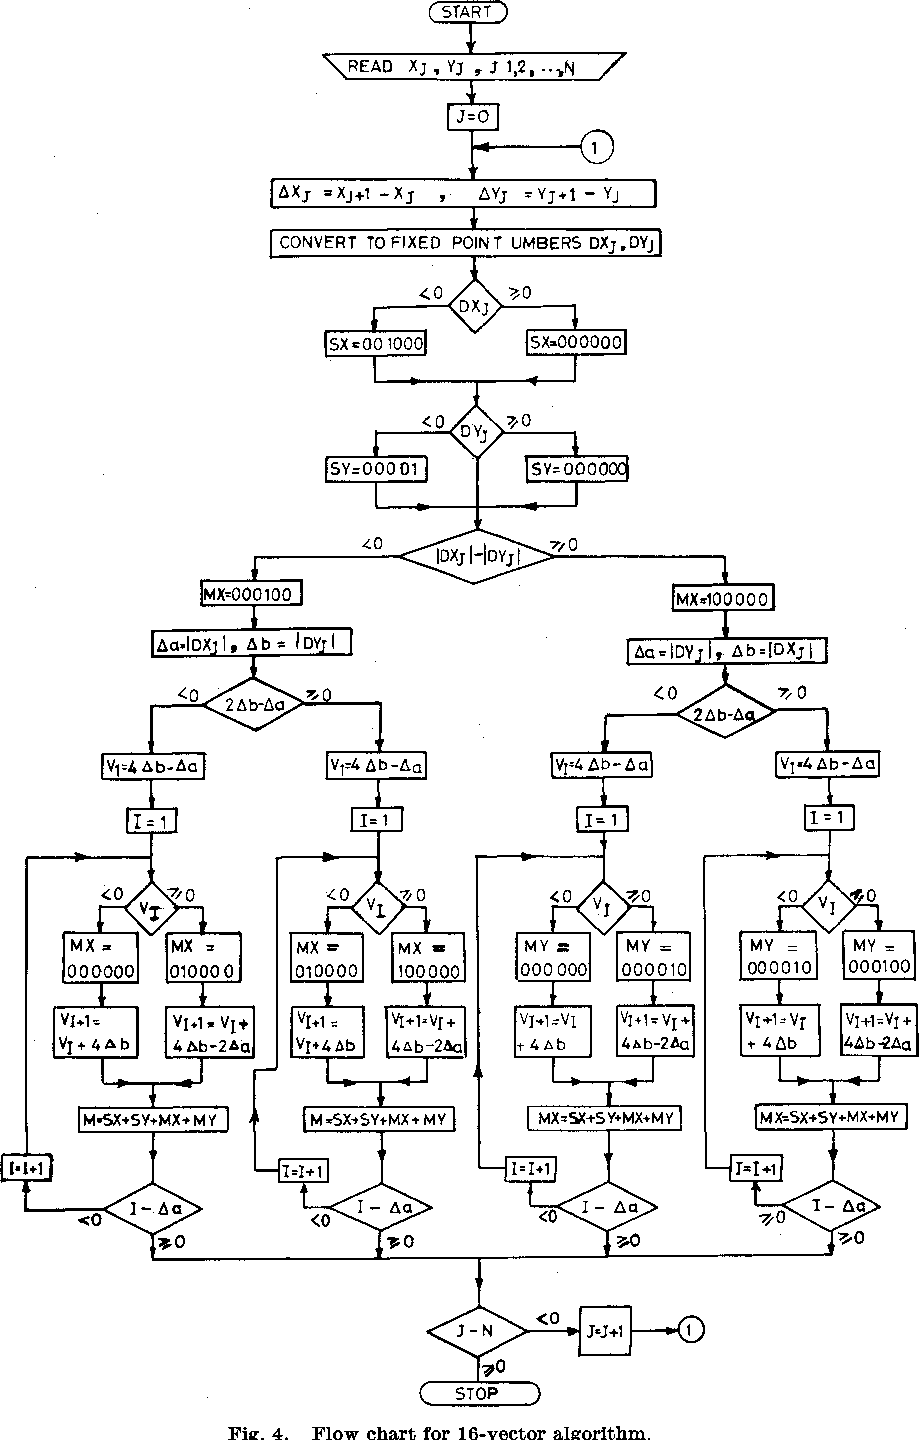 The 16-Vector Algorithm for Computer Controlled Digital X-Y